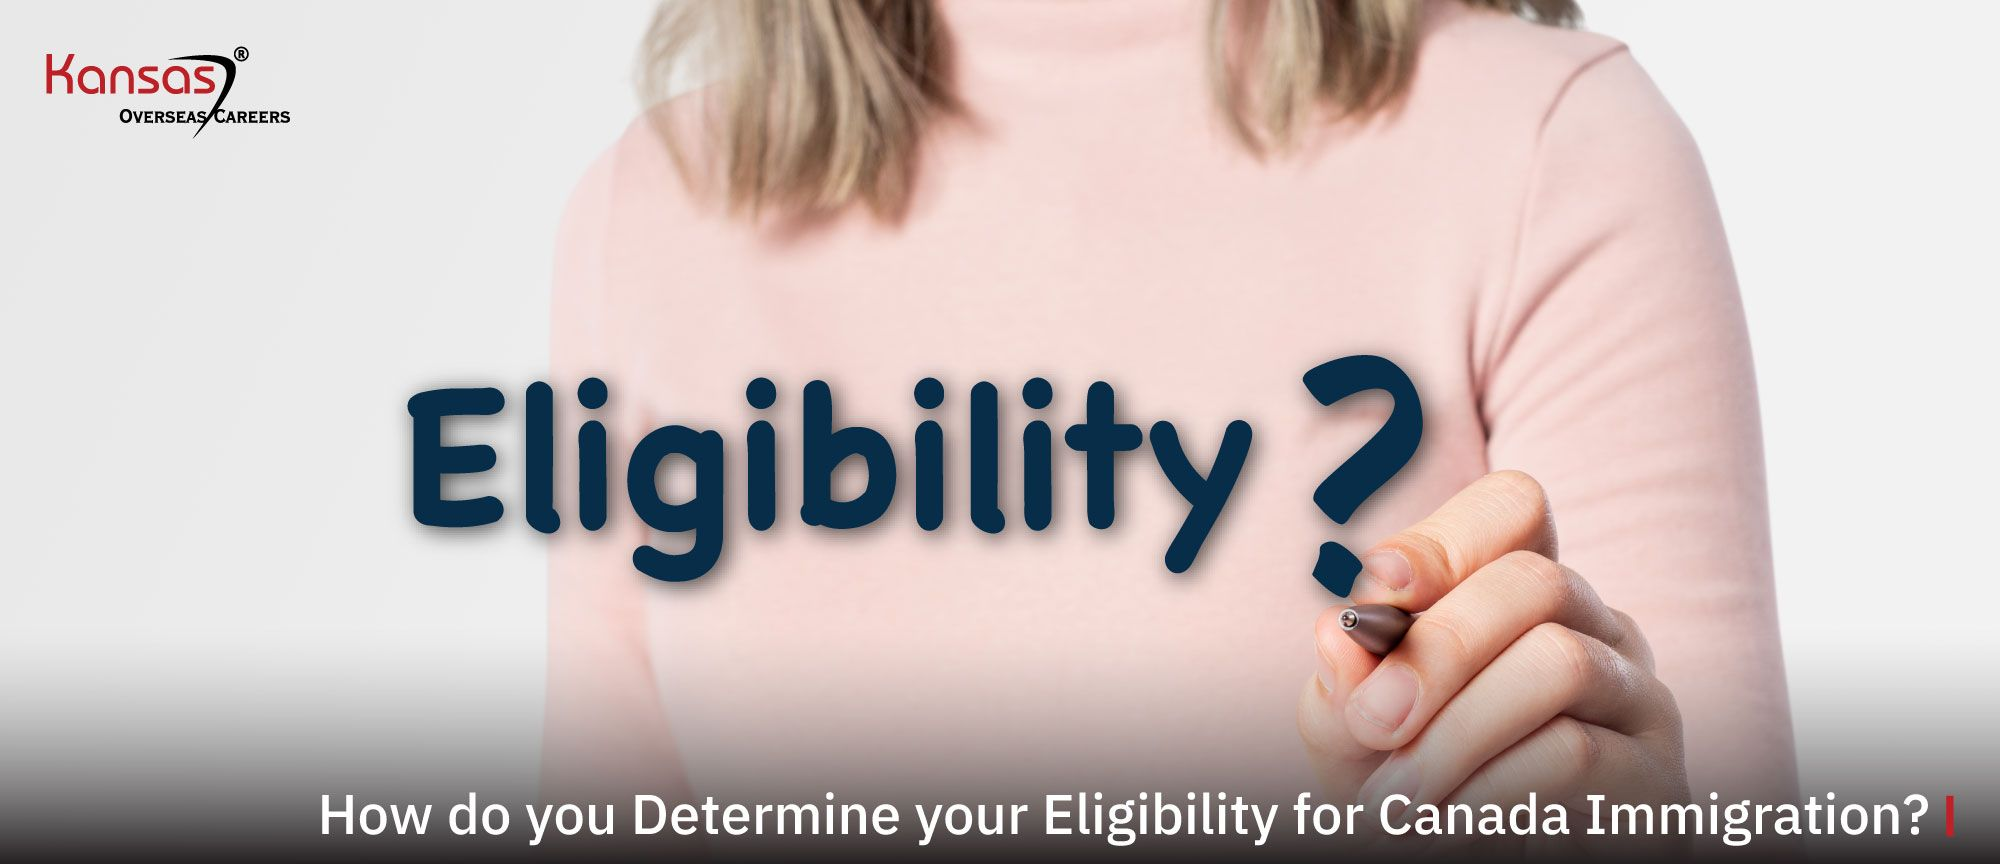 How-do-you-Determine-your-Eligibility-for-Canada-Immigration-